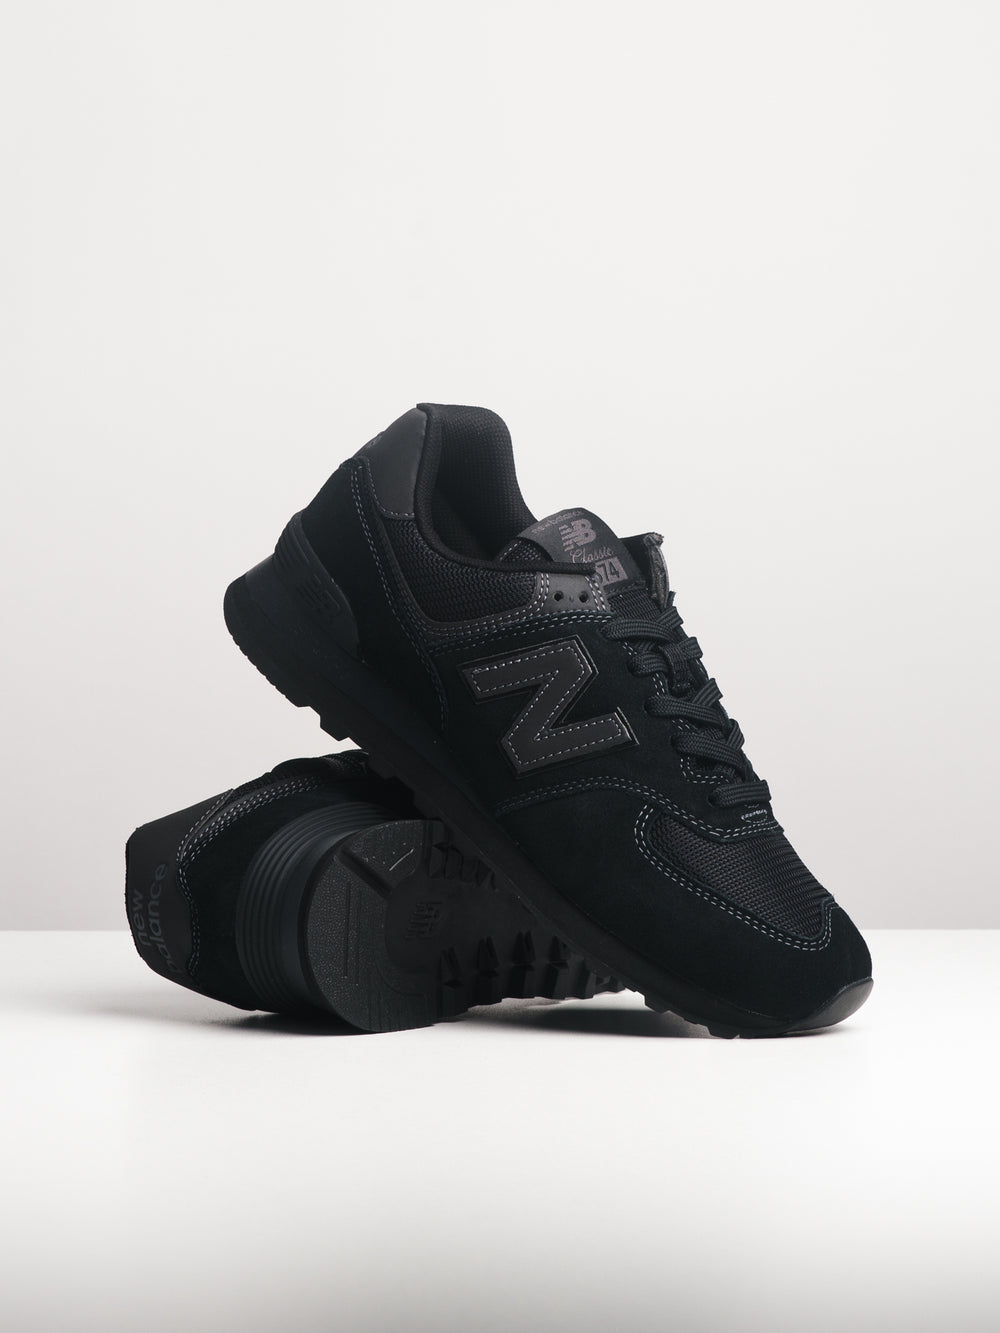 MENS 574 - ALL BLACK